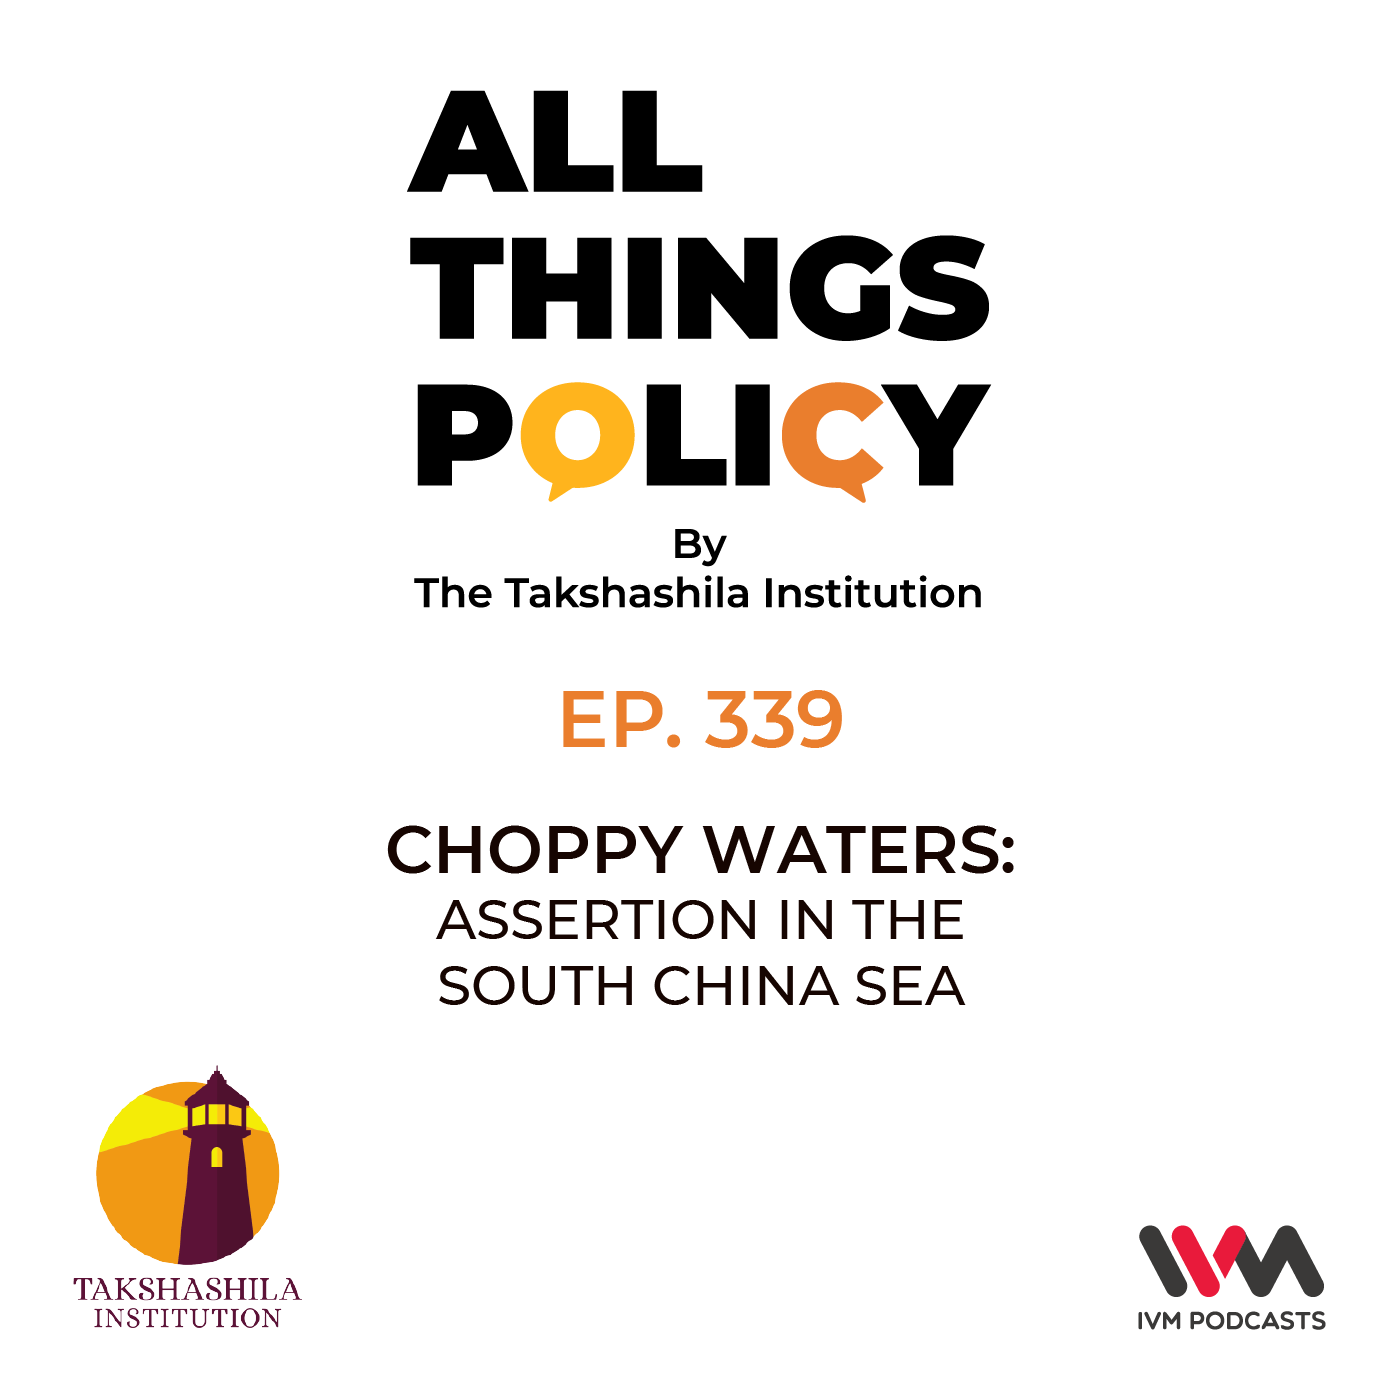 Ep. 339: Choppy Waters: Assertion in the South China Sea